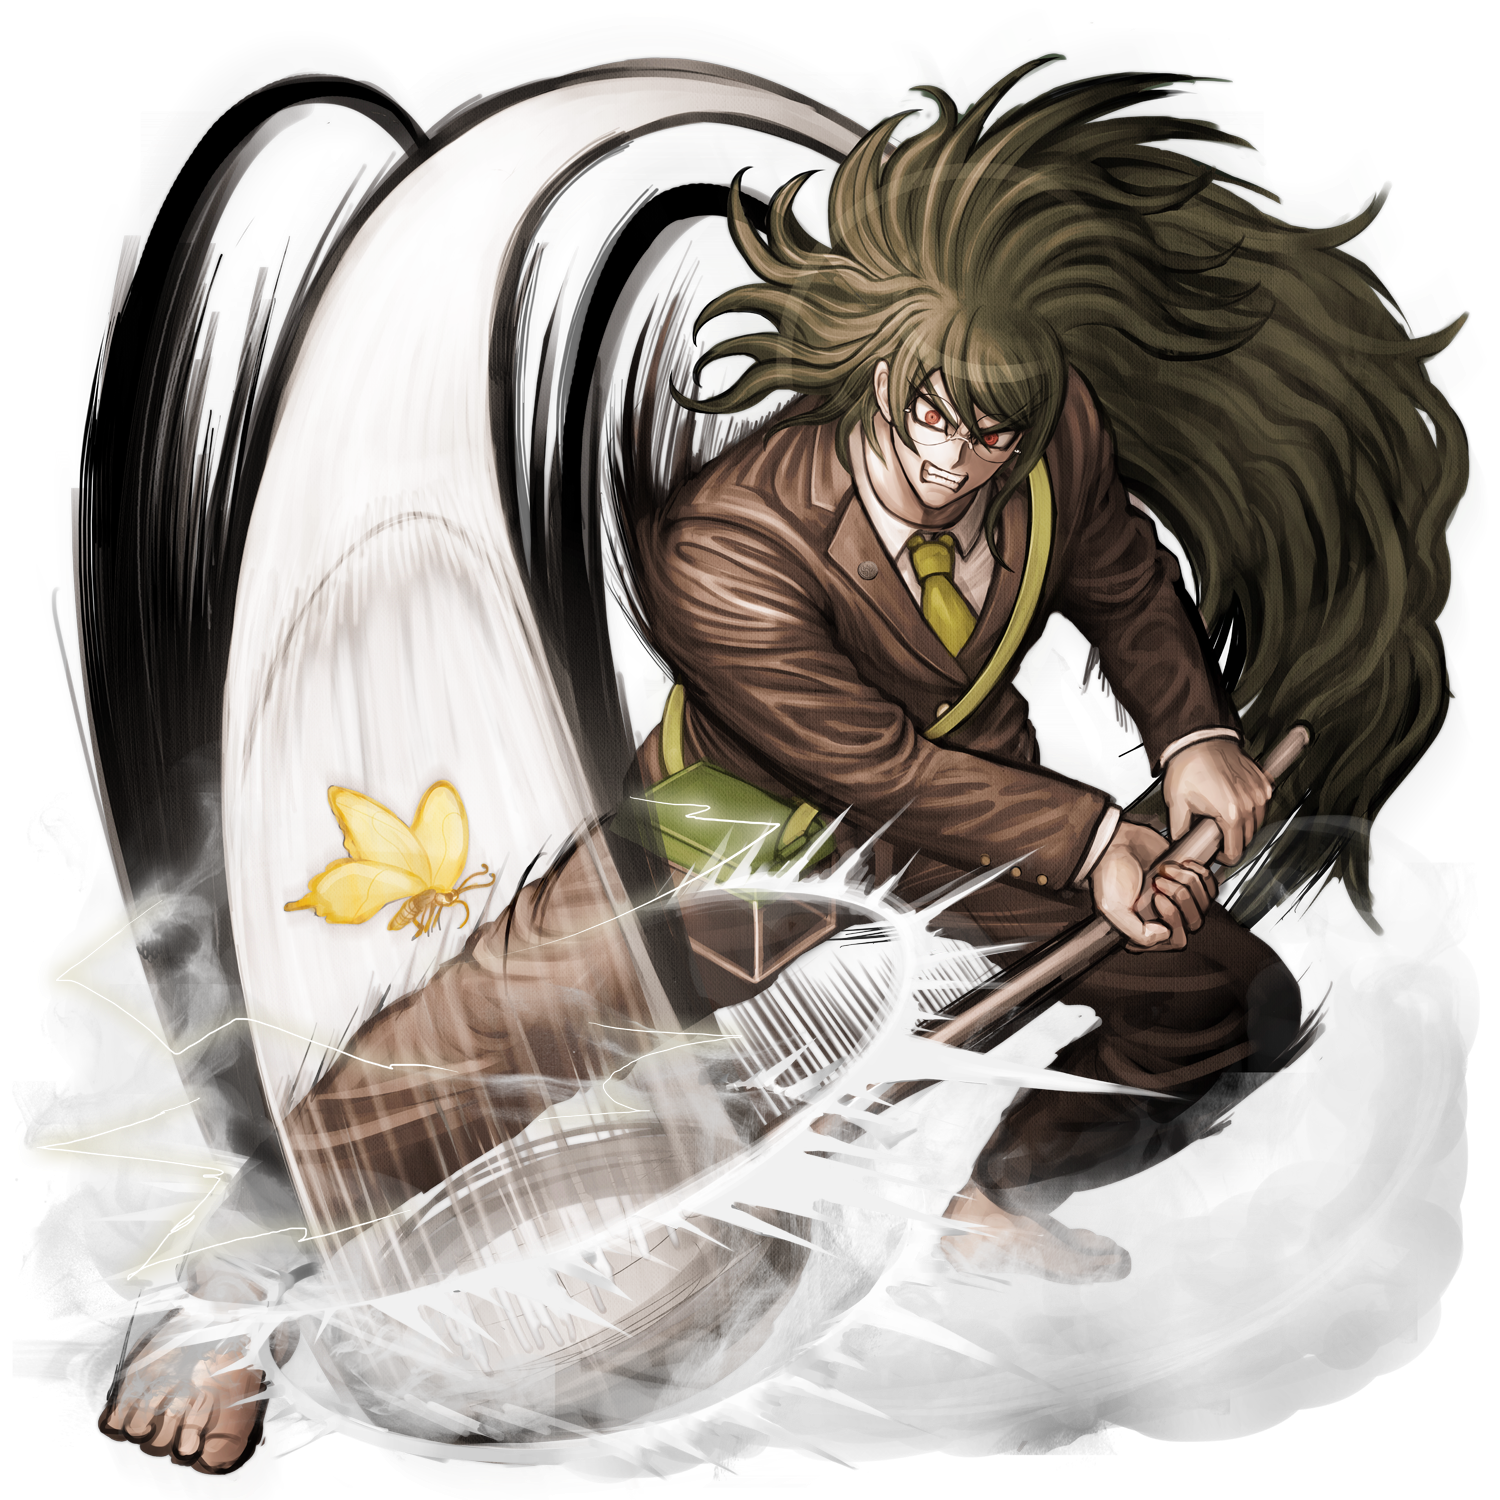 Gonta Gokuhara | Danganronpa Wiki | FANDOM powered by Wikia